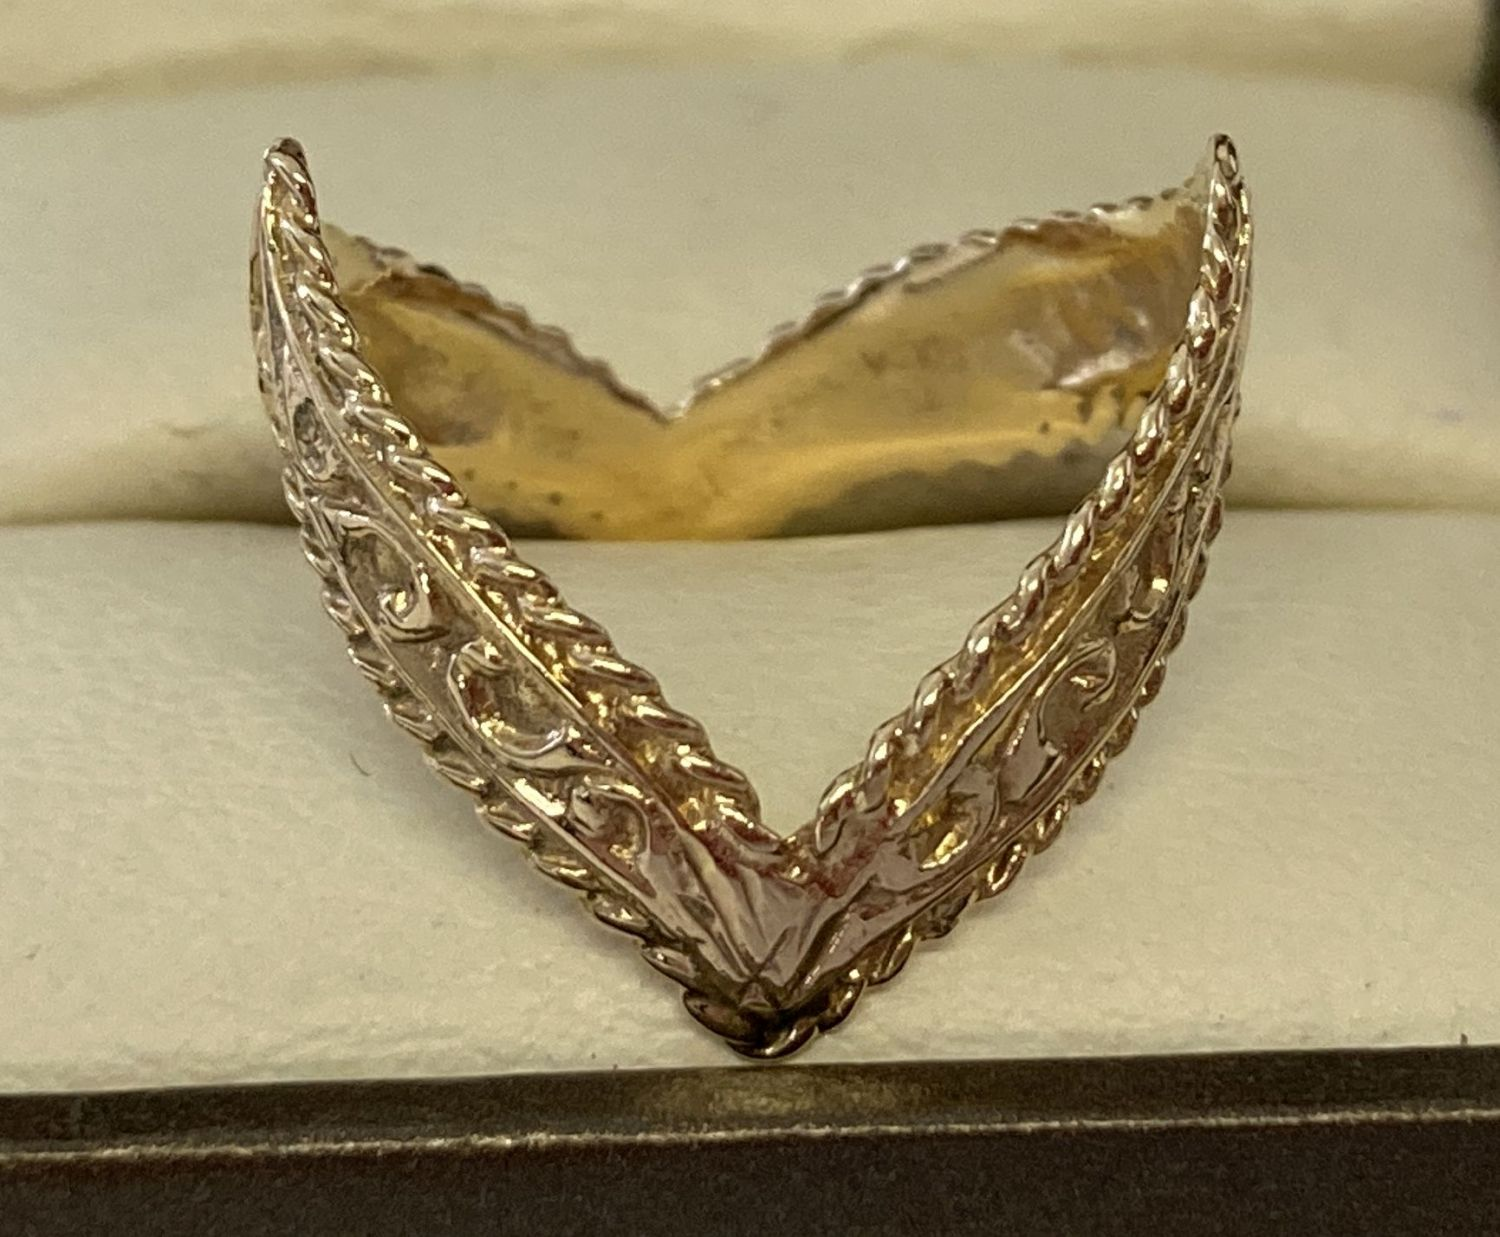 A 9ct gold double wishbone dress ring with scroll decoration throughout.